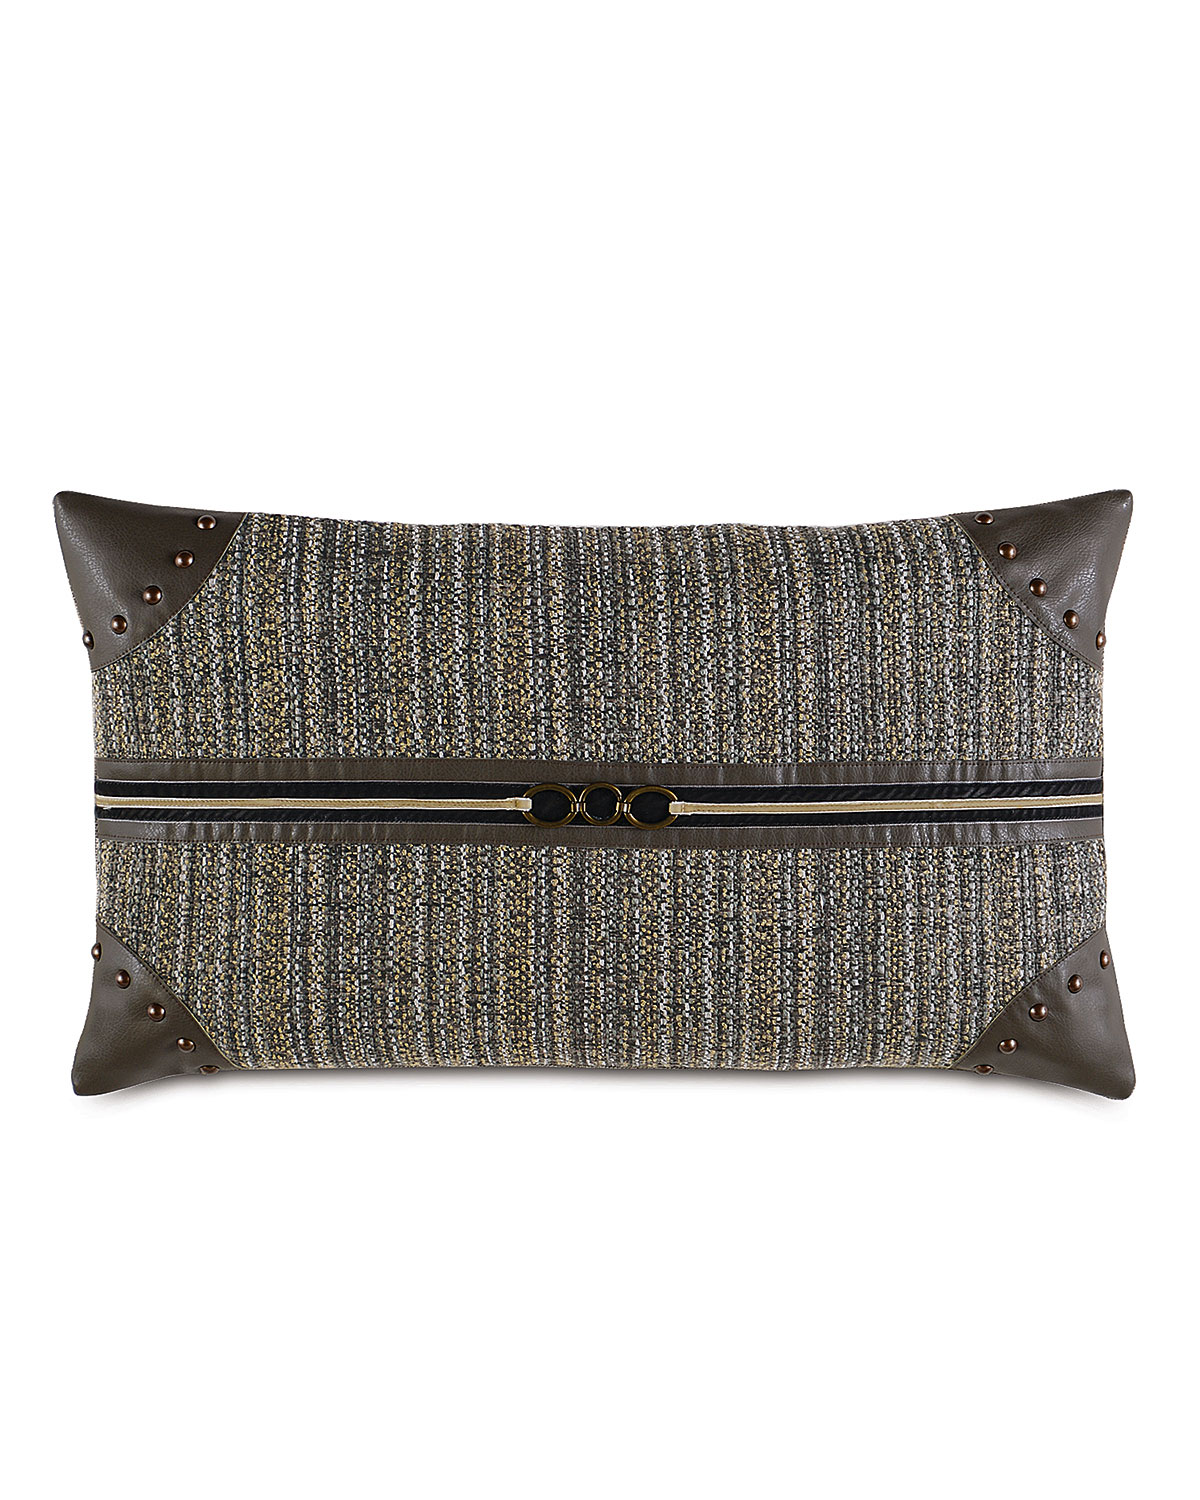 Eastern Accents REIGN BOLSTER PILLOW